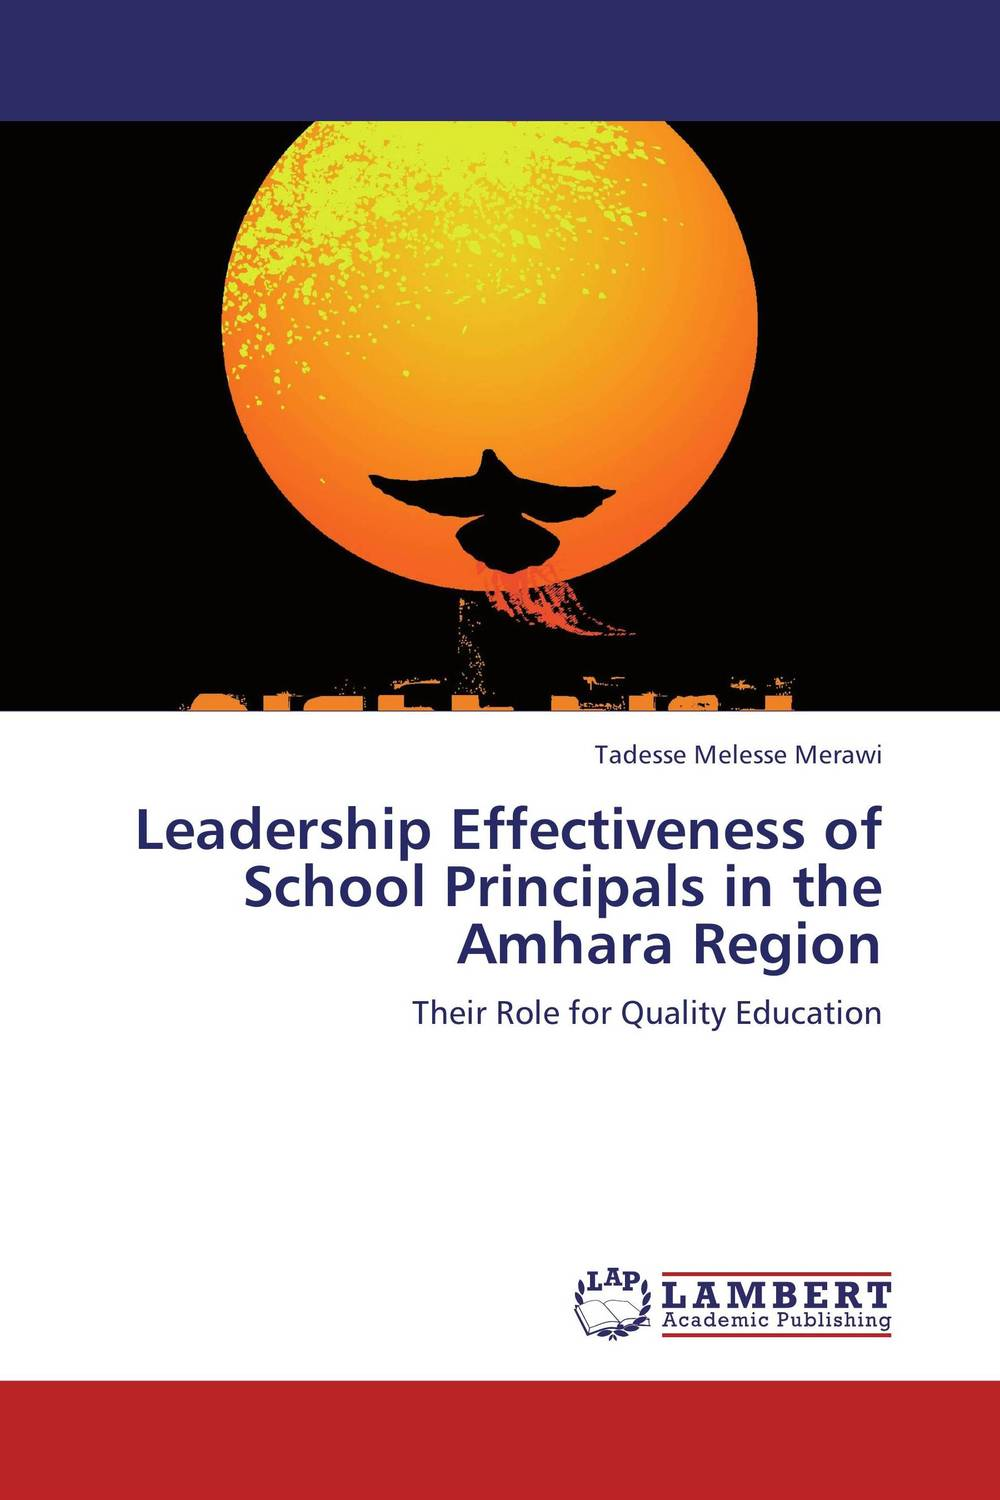 Leadership Effectiveness of School Principals in the Amhara Region role of school leadership in promoting moral integrity among students